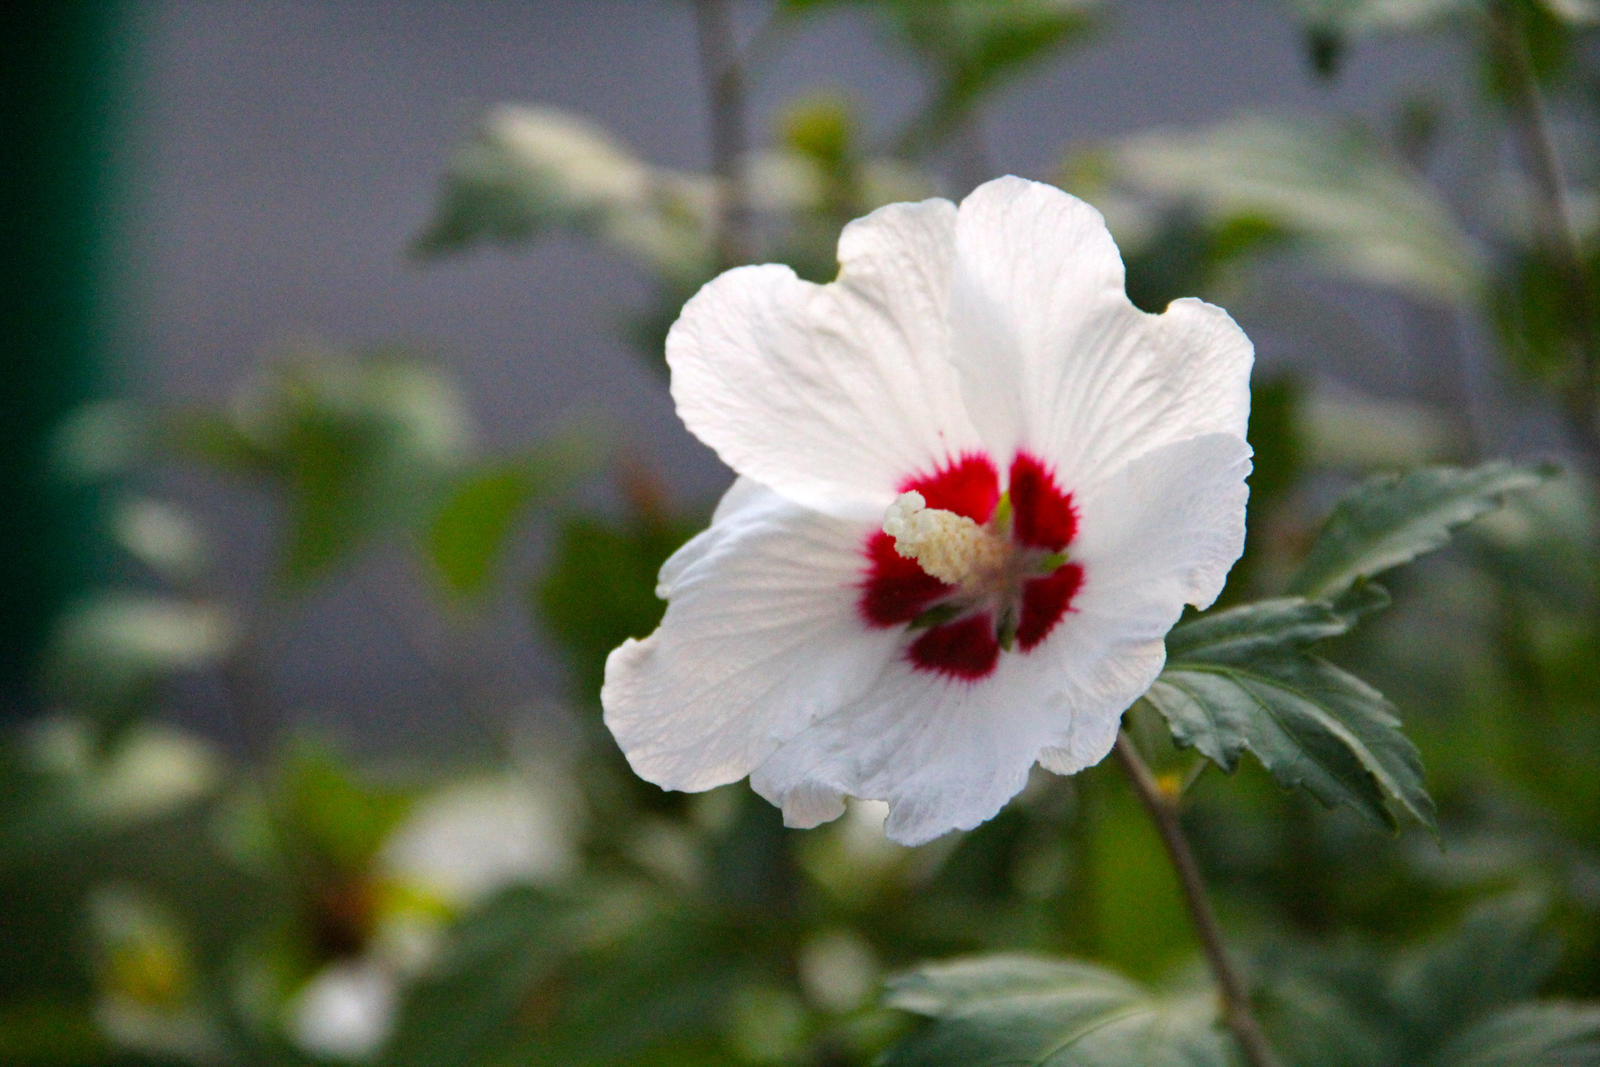 White Flower With A Bit Of Red In The Middle By Emoshunka On Deviantart